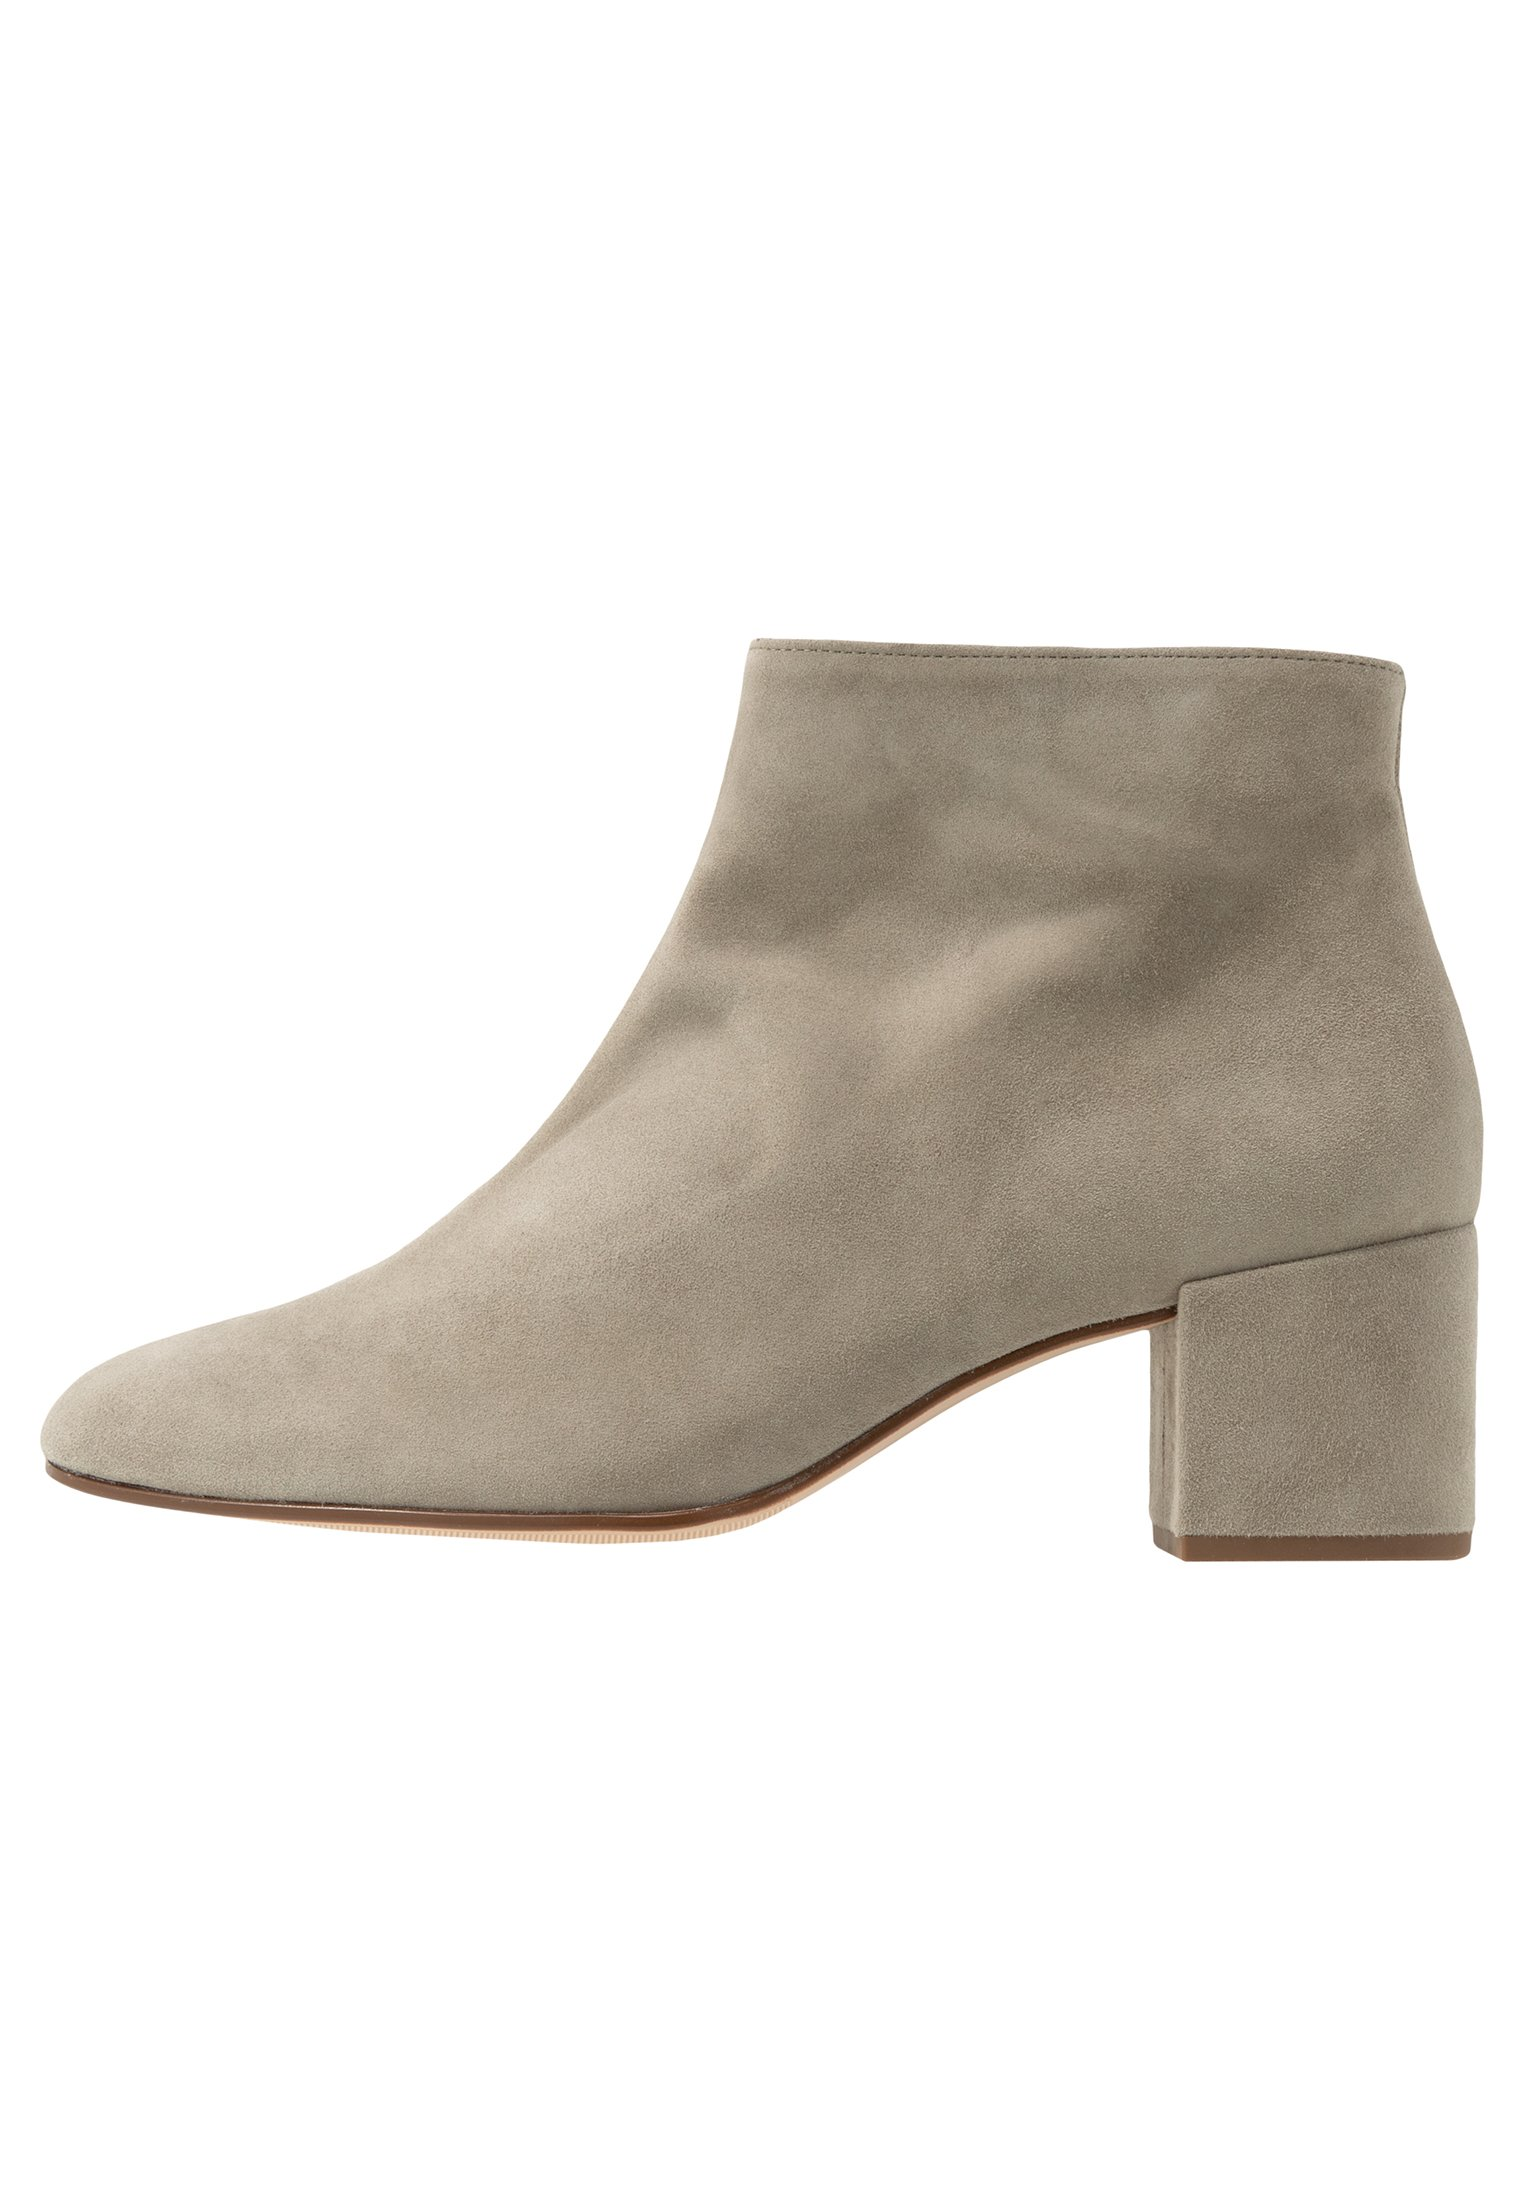 Högl Ankle boot - taupe